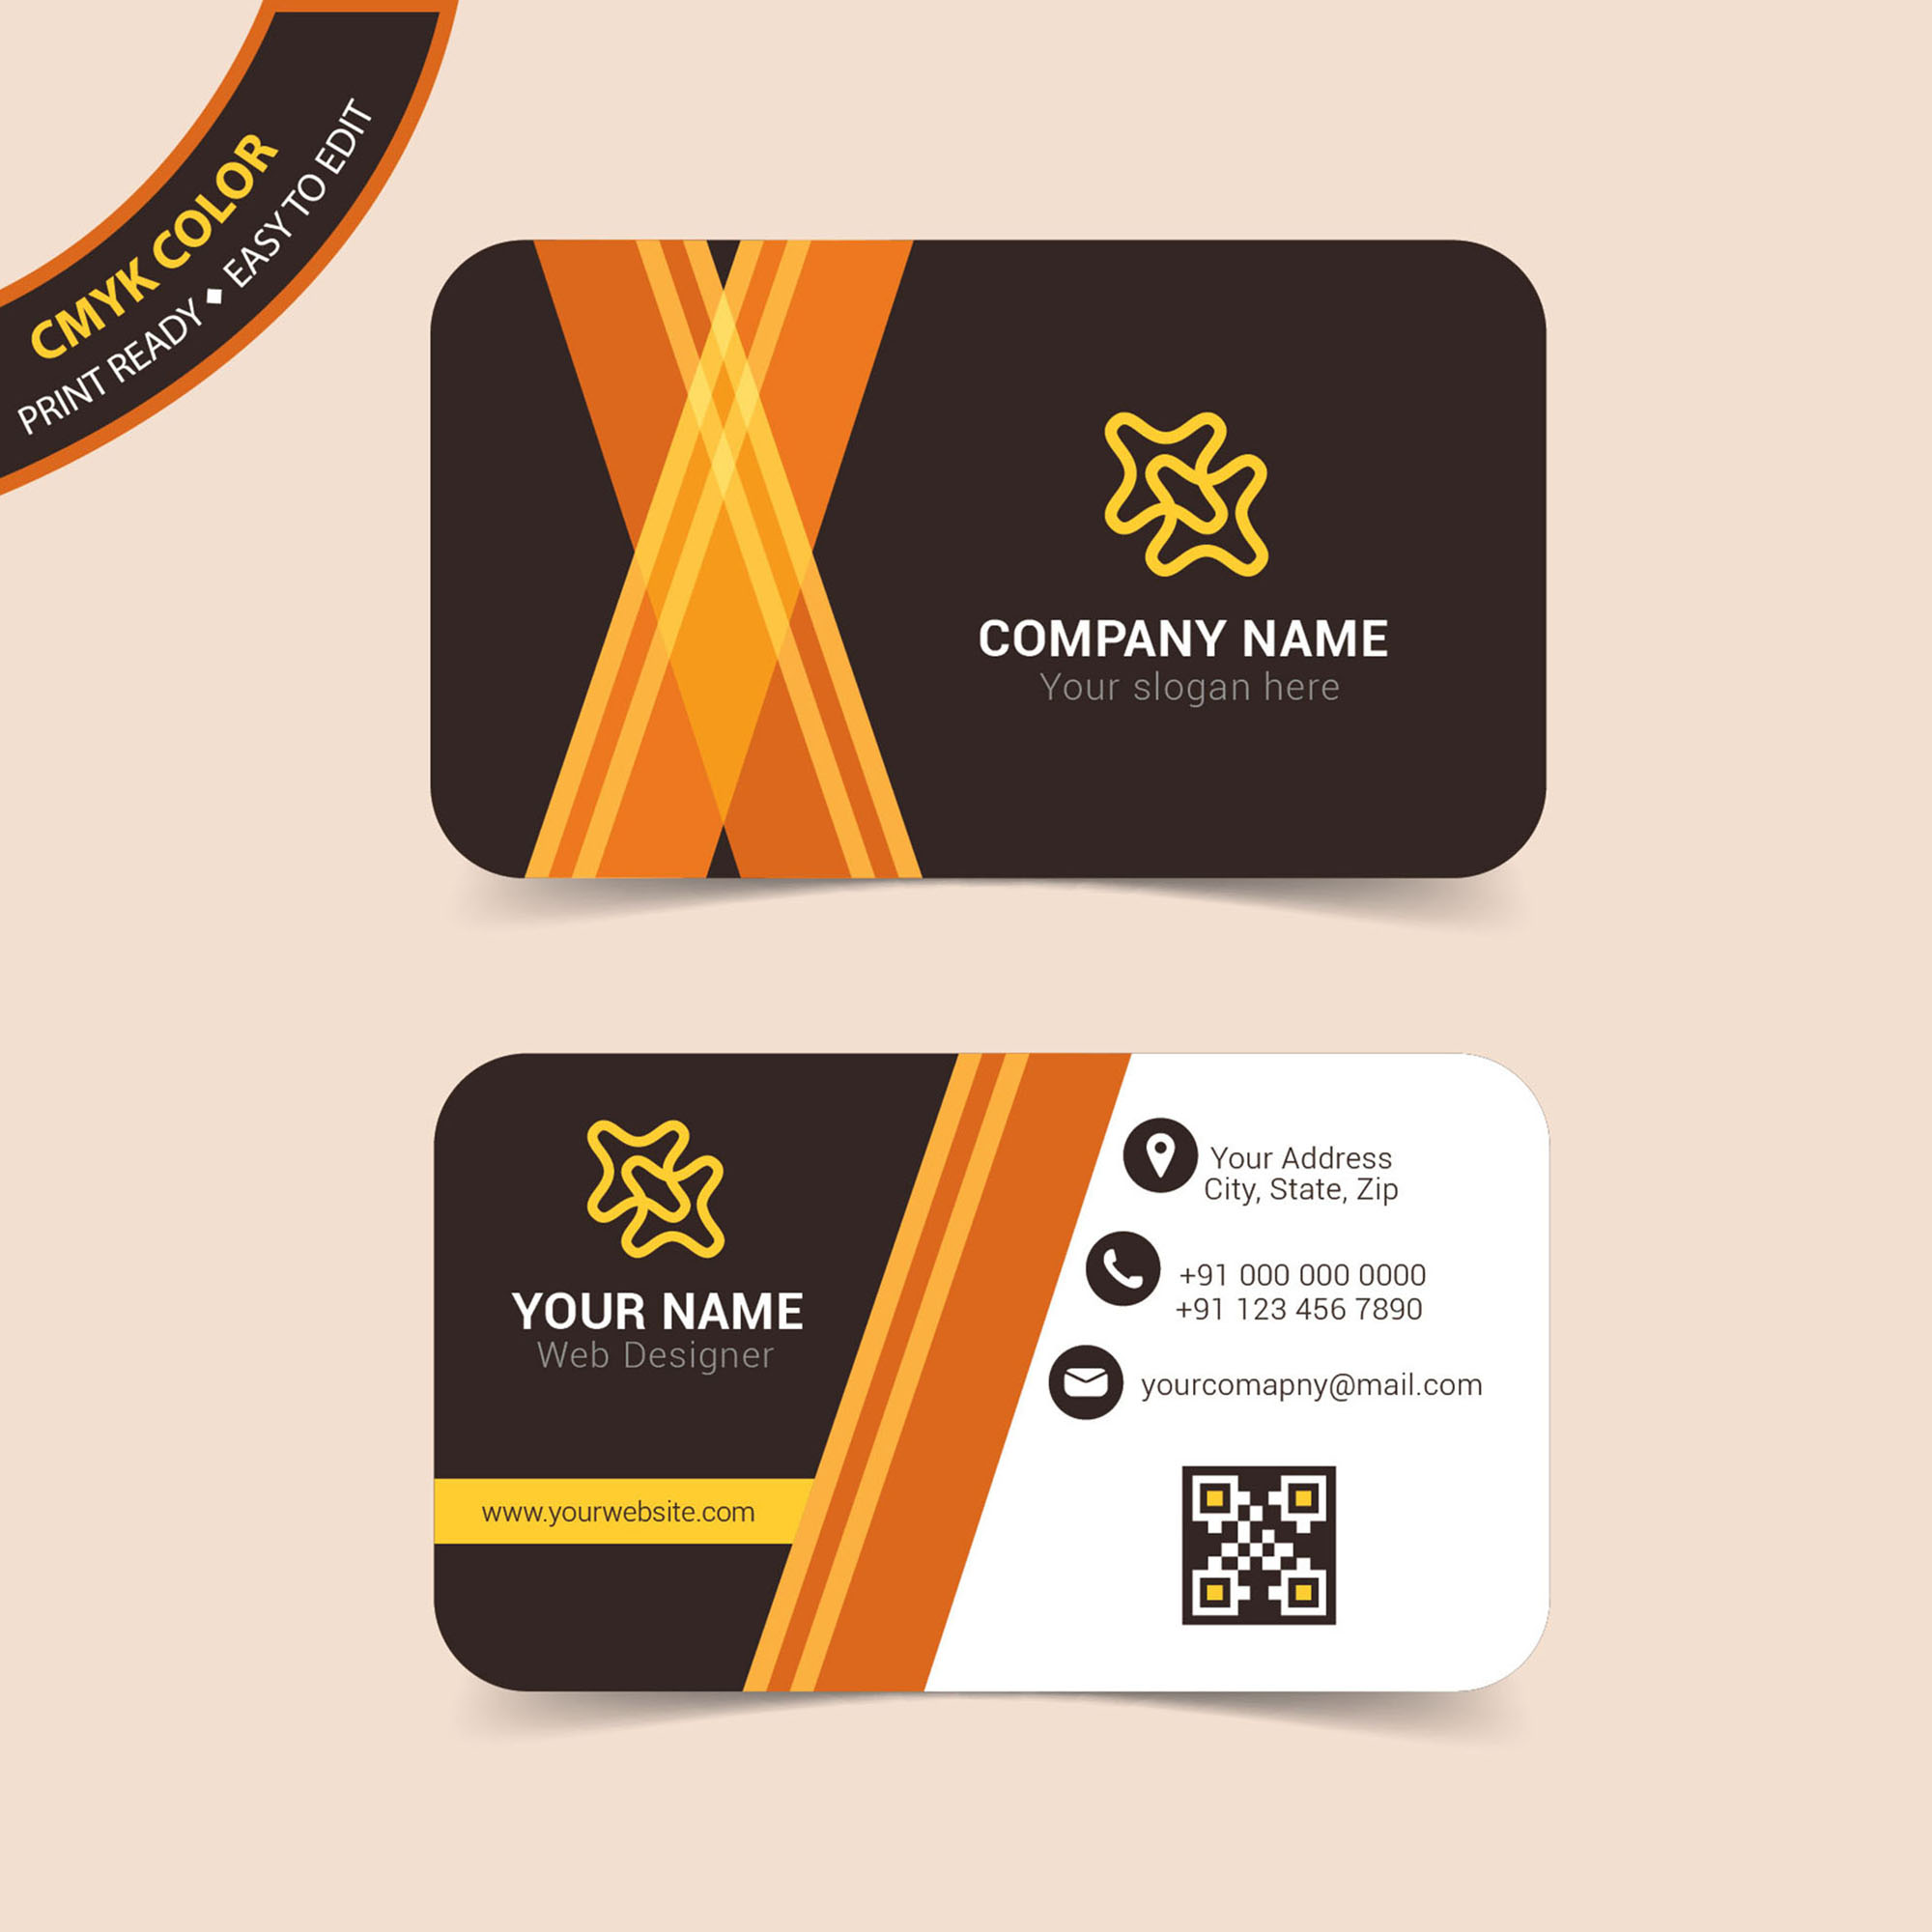 Professional Business Card Free Download Wisxicom - Professional business card design templates